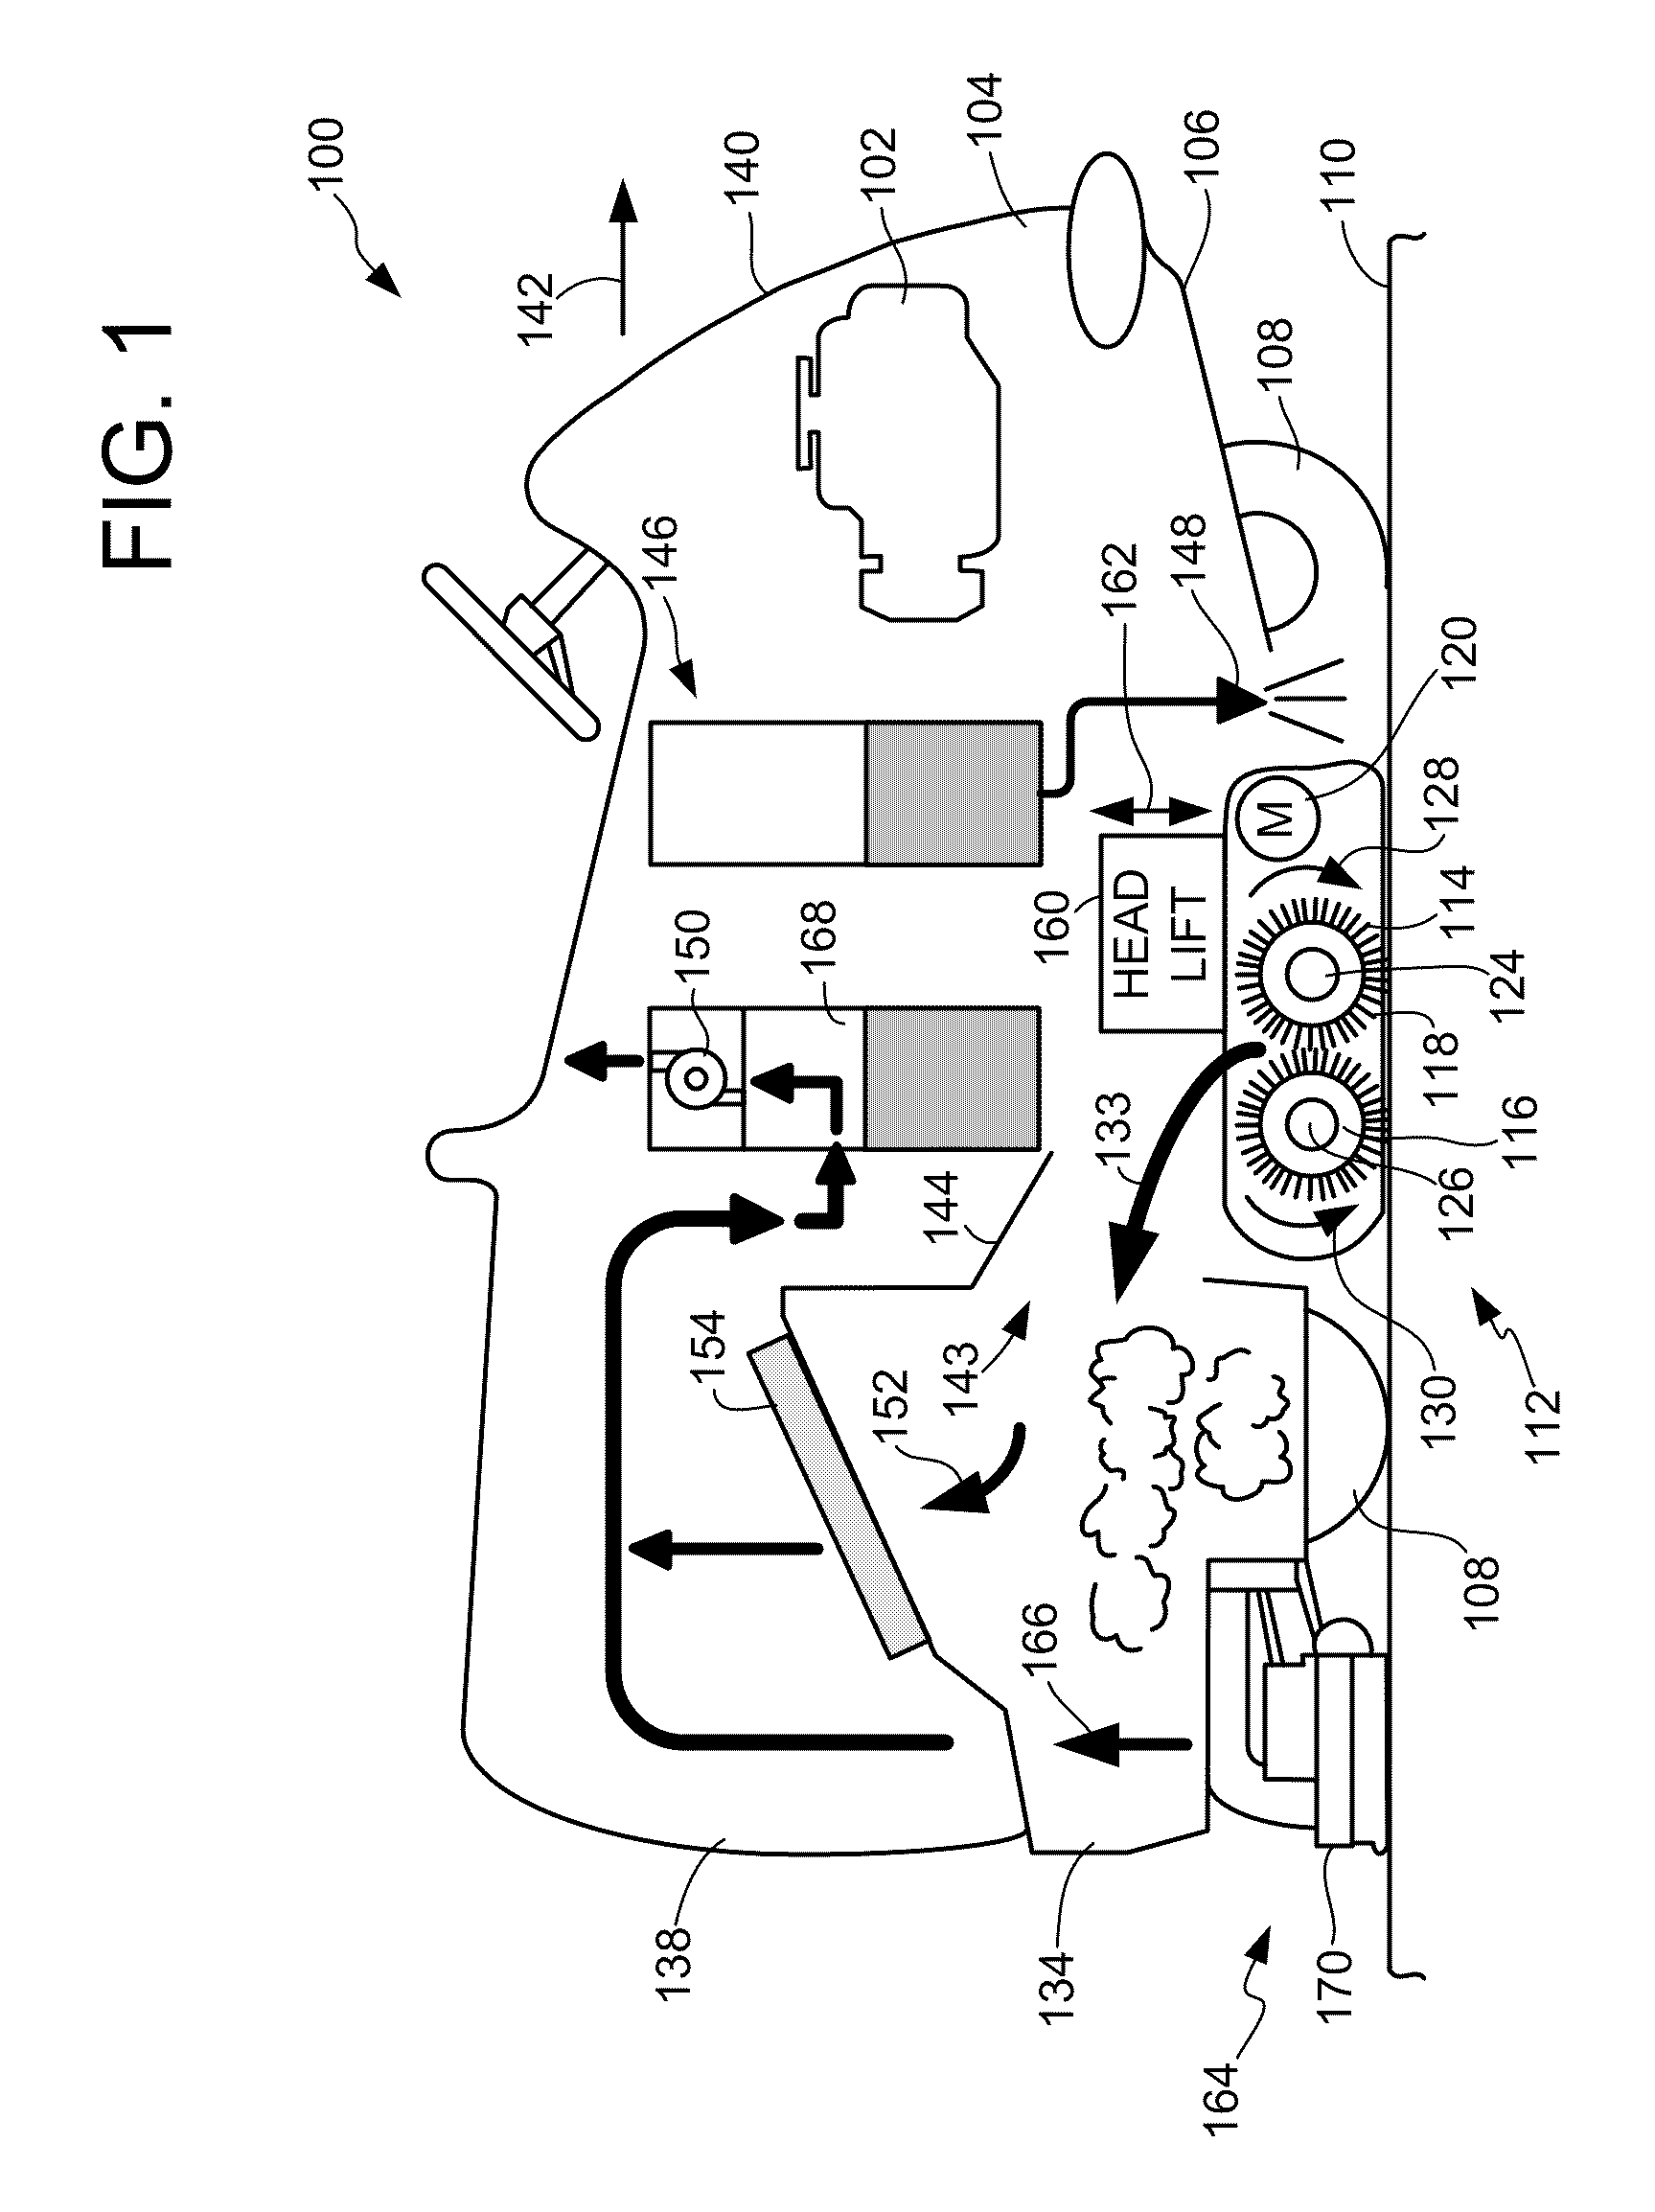 Patent Us7665174 Cleaning Head For Use In A Floor Machine Diagram Parts List Model 1960 Bissellparts Wetcarpetcleaner Drawing